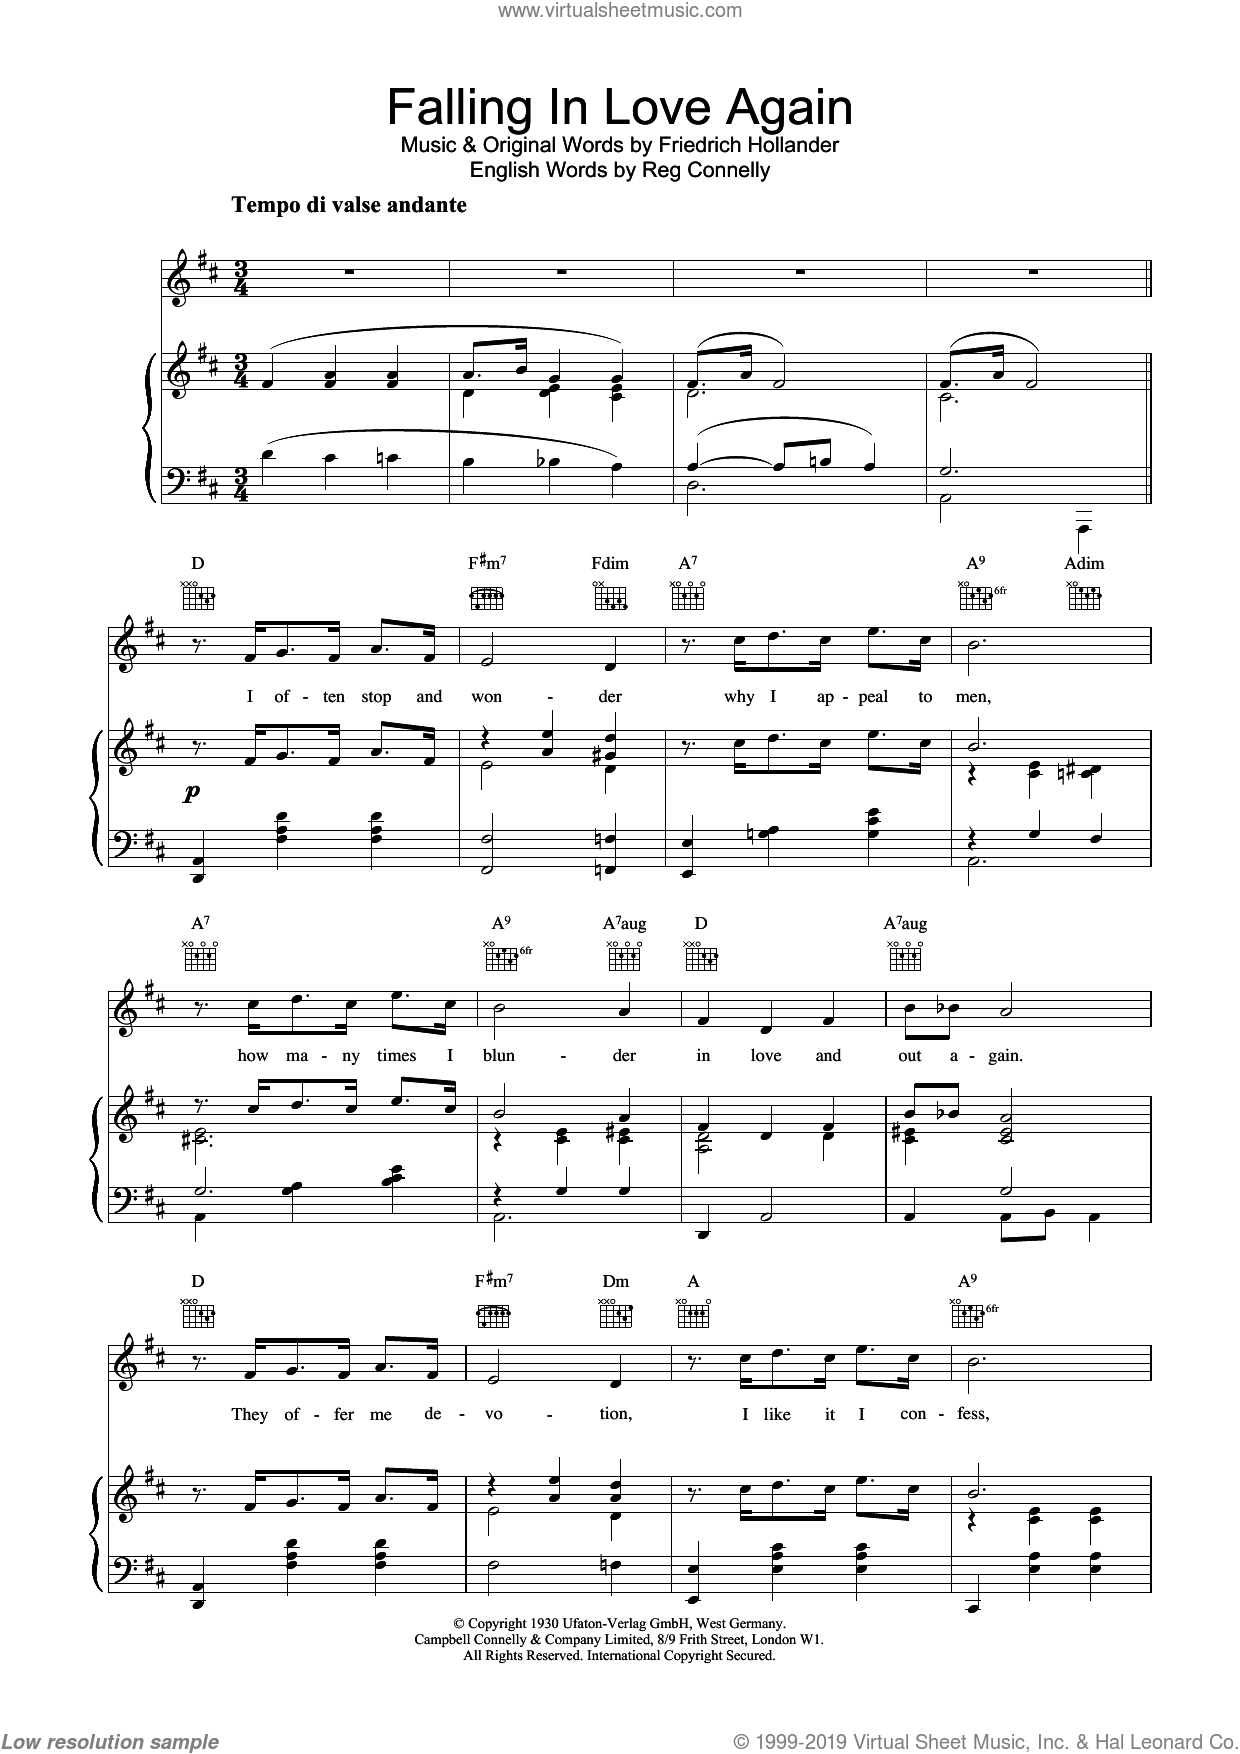 Falling In Love Again sheet music for voice, piano or guitar by Marlene Dietrich, intermediate